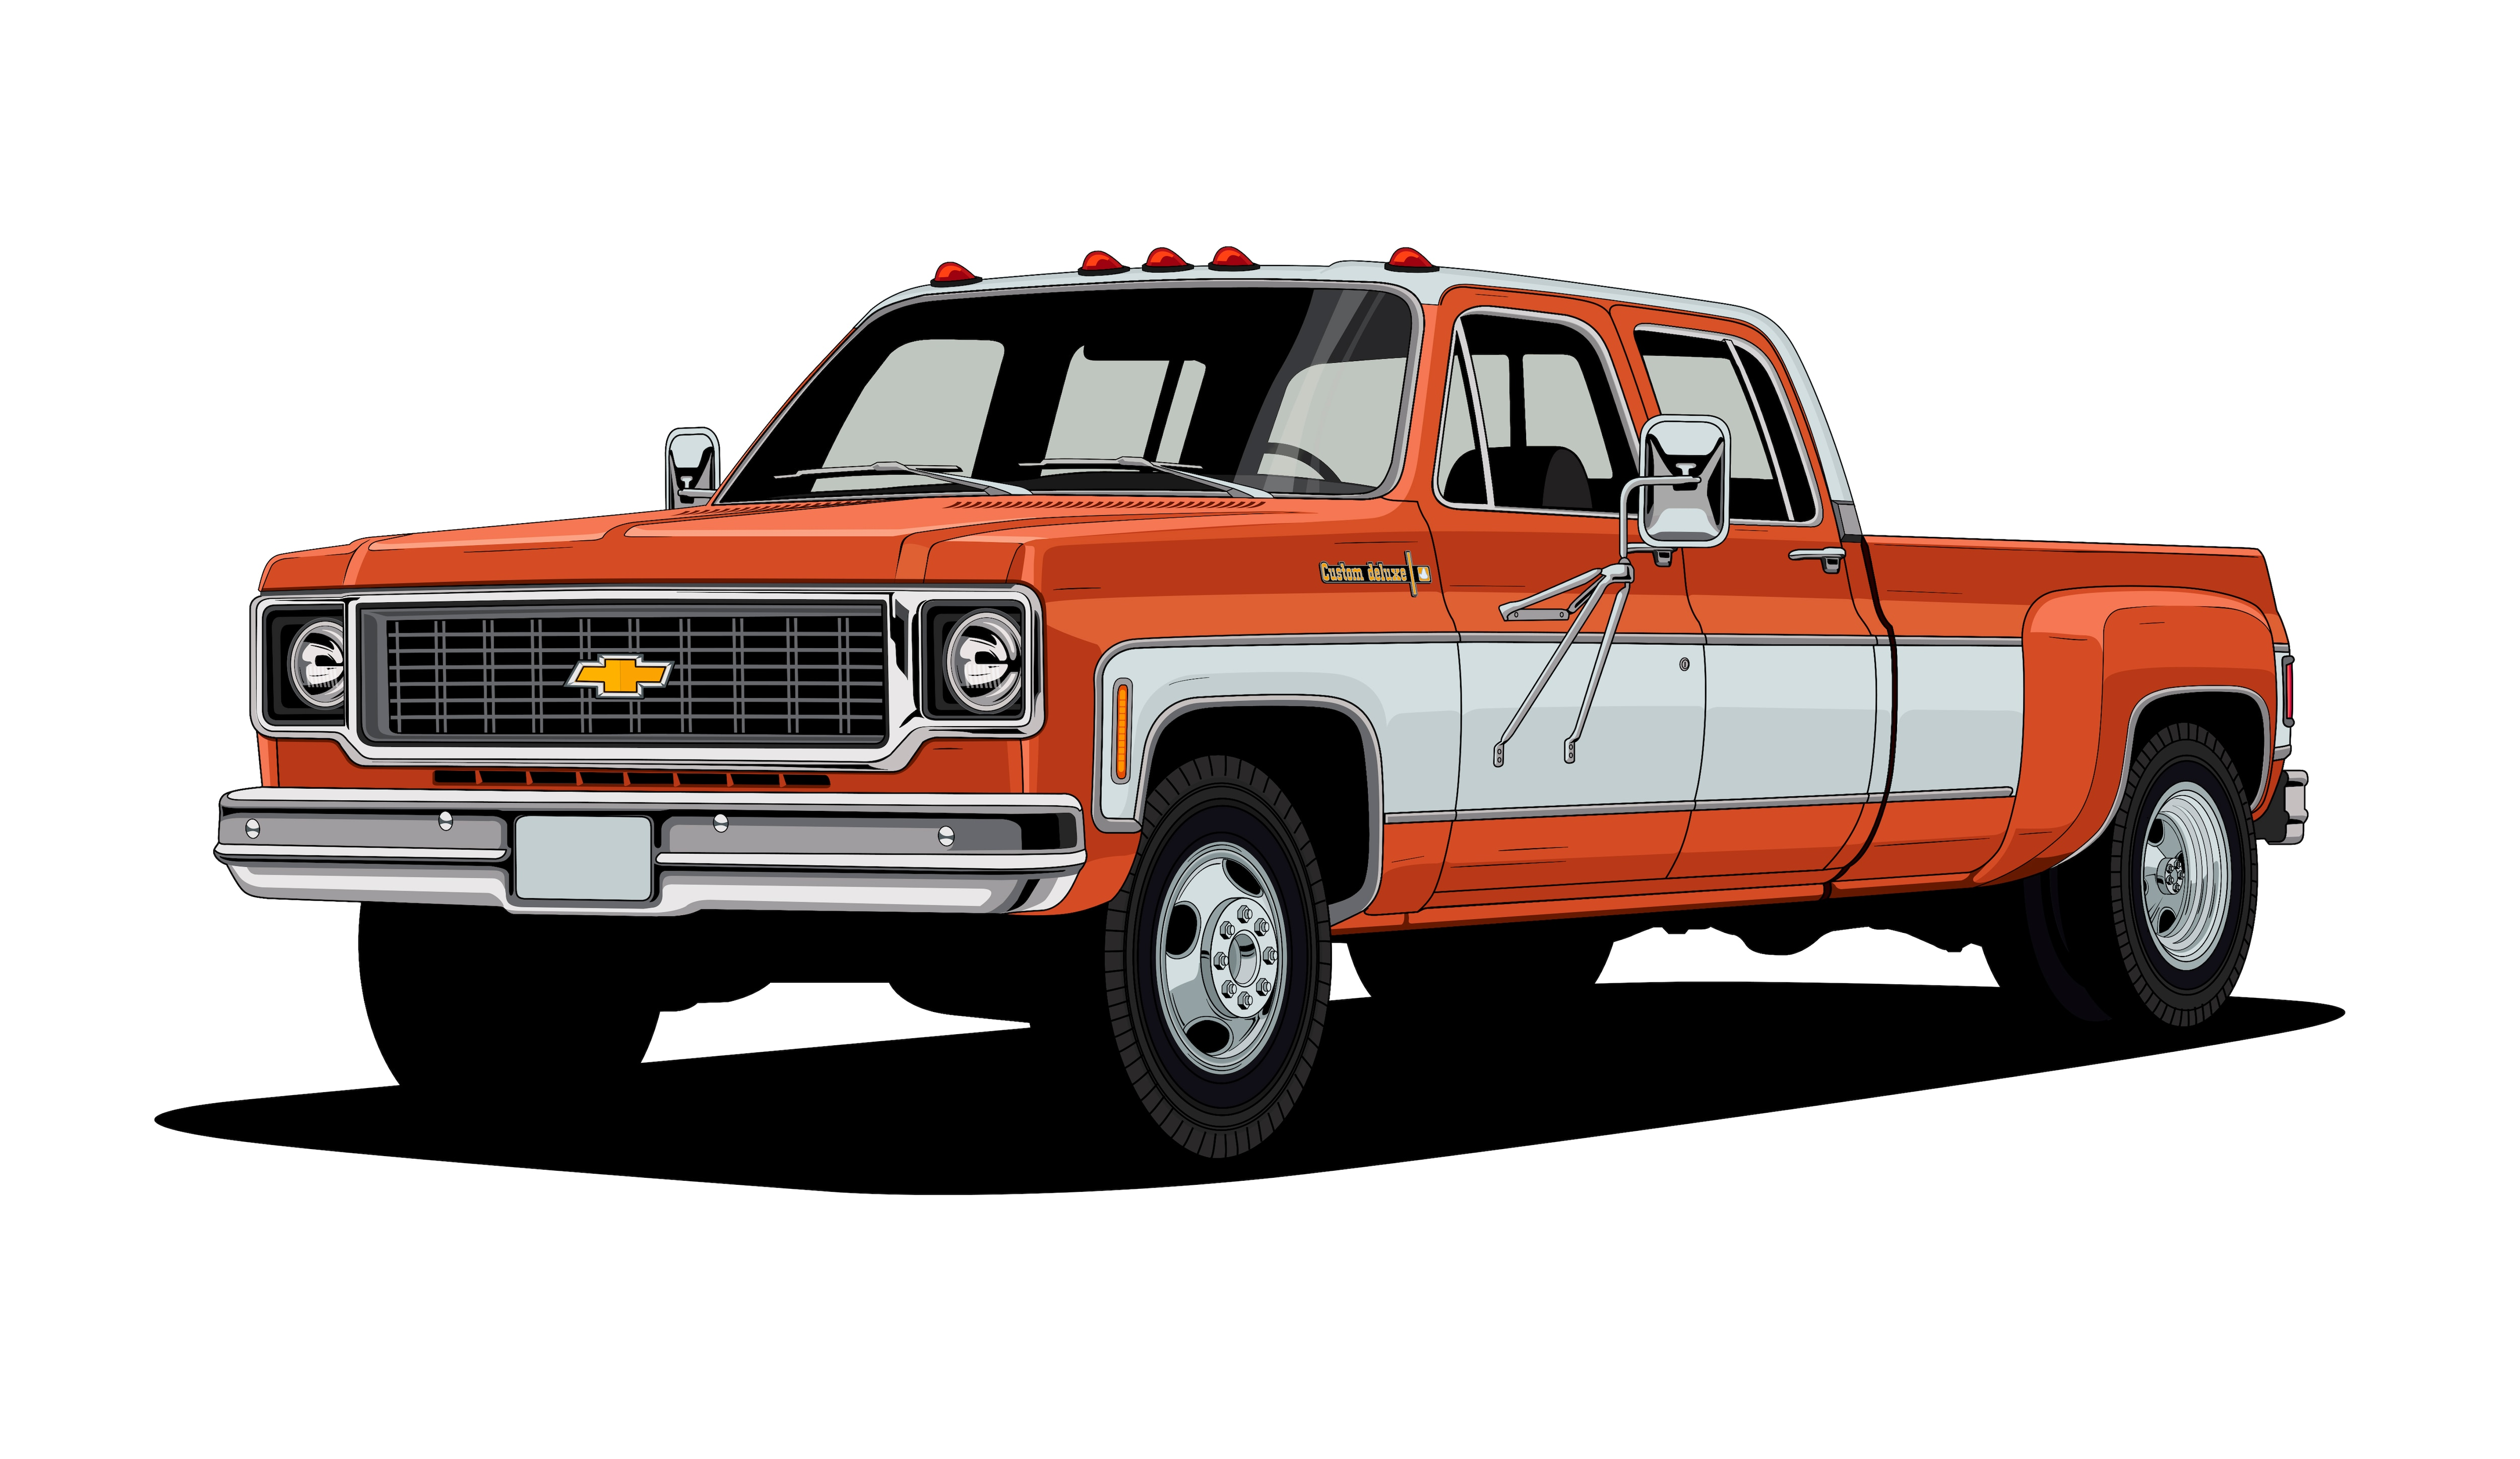 2007 Chevy Silverado Interior >> This Is What a Century of Chevy Trucks Looks Like | Automobile Magazine